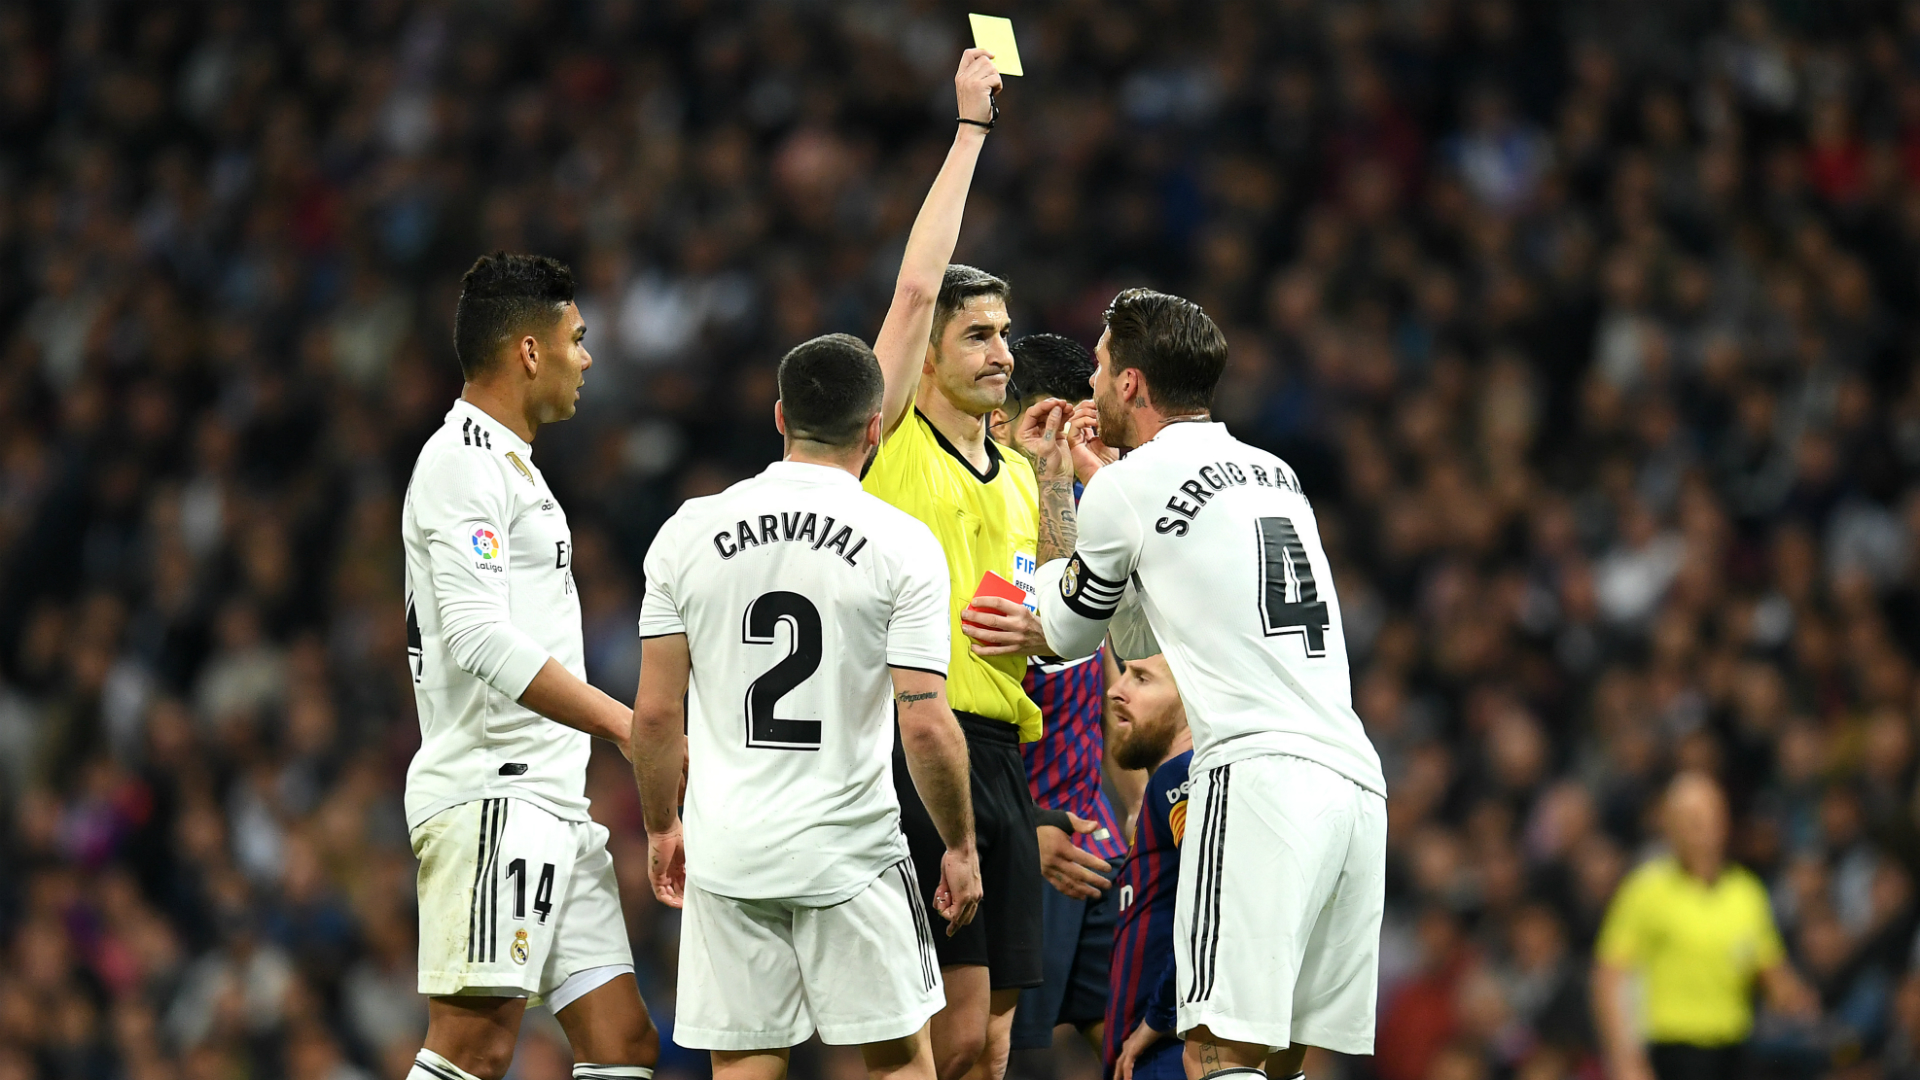 Real Madrid agree to Barcelona proposed date for Clasico